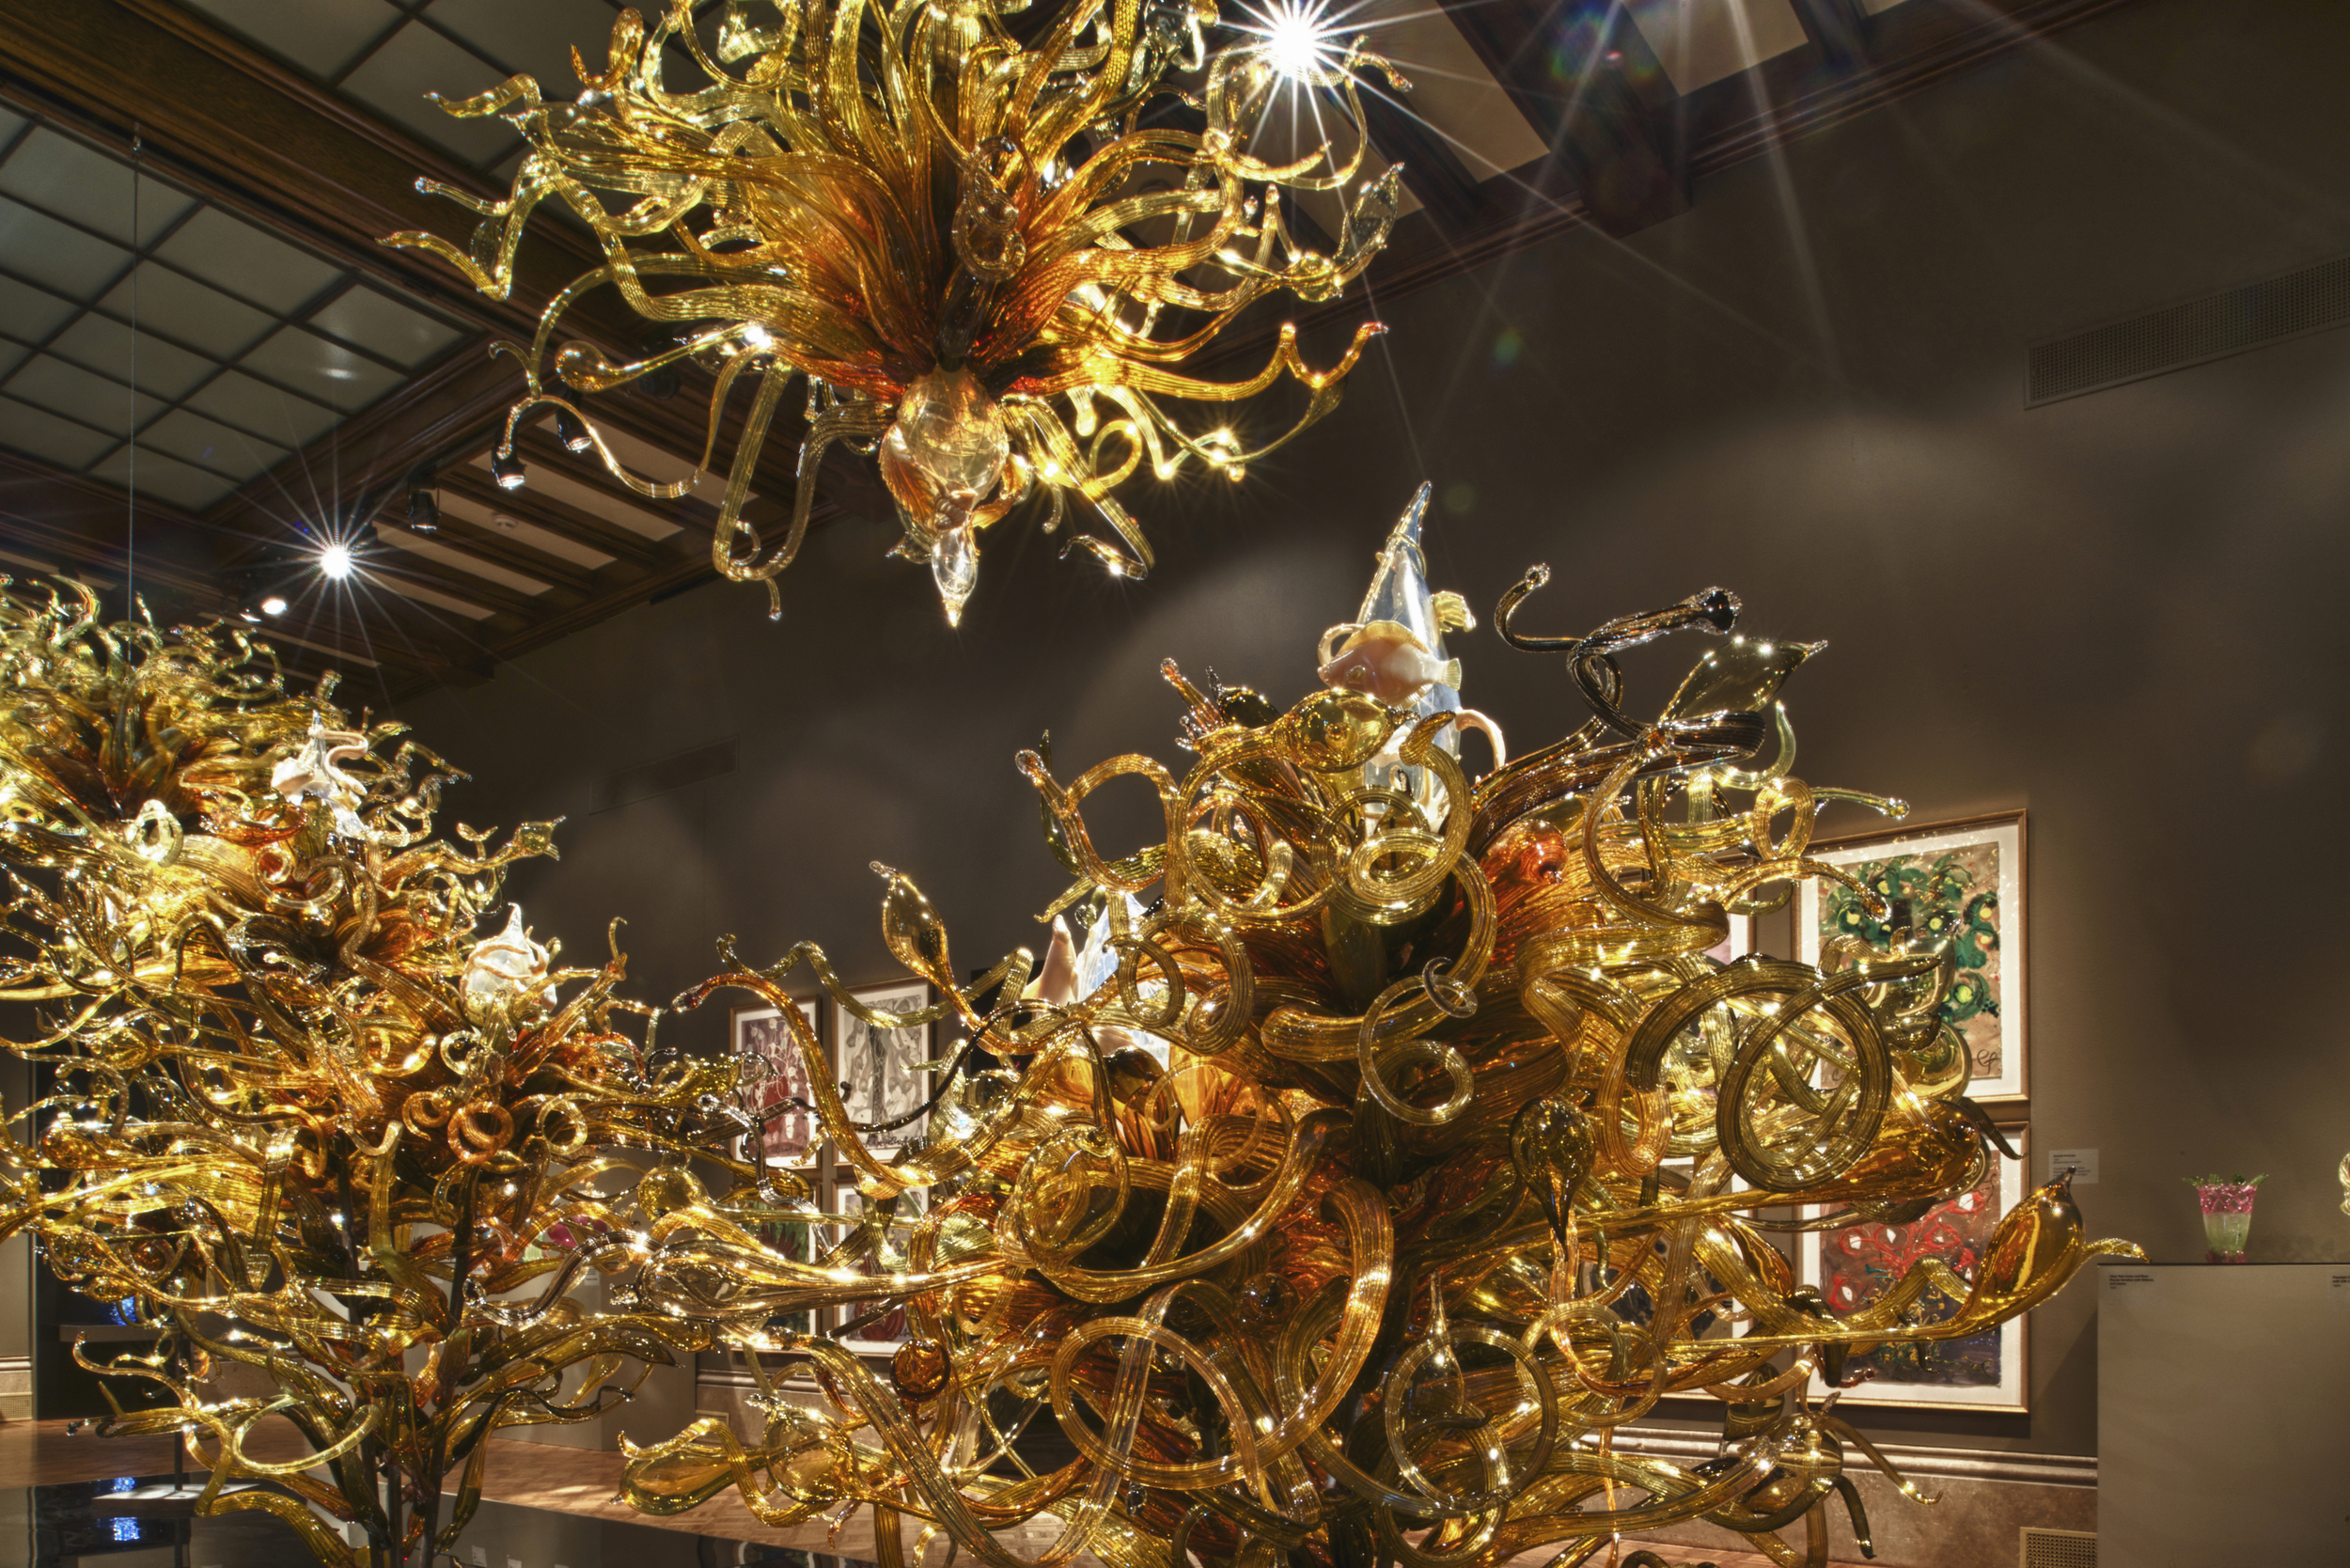 Dale Chihuly,   Laguna Murano Chandelier   (Paine Art Center, Oshkosh, Wisconsin, 2013)